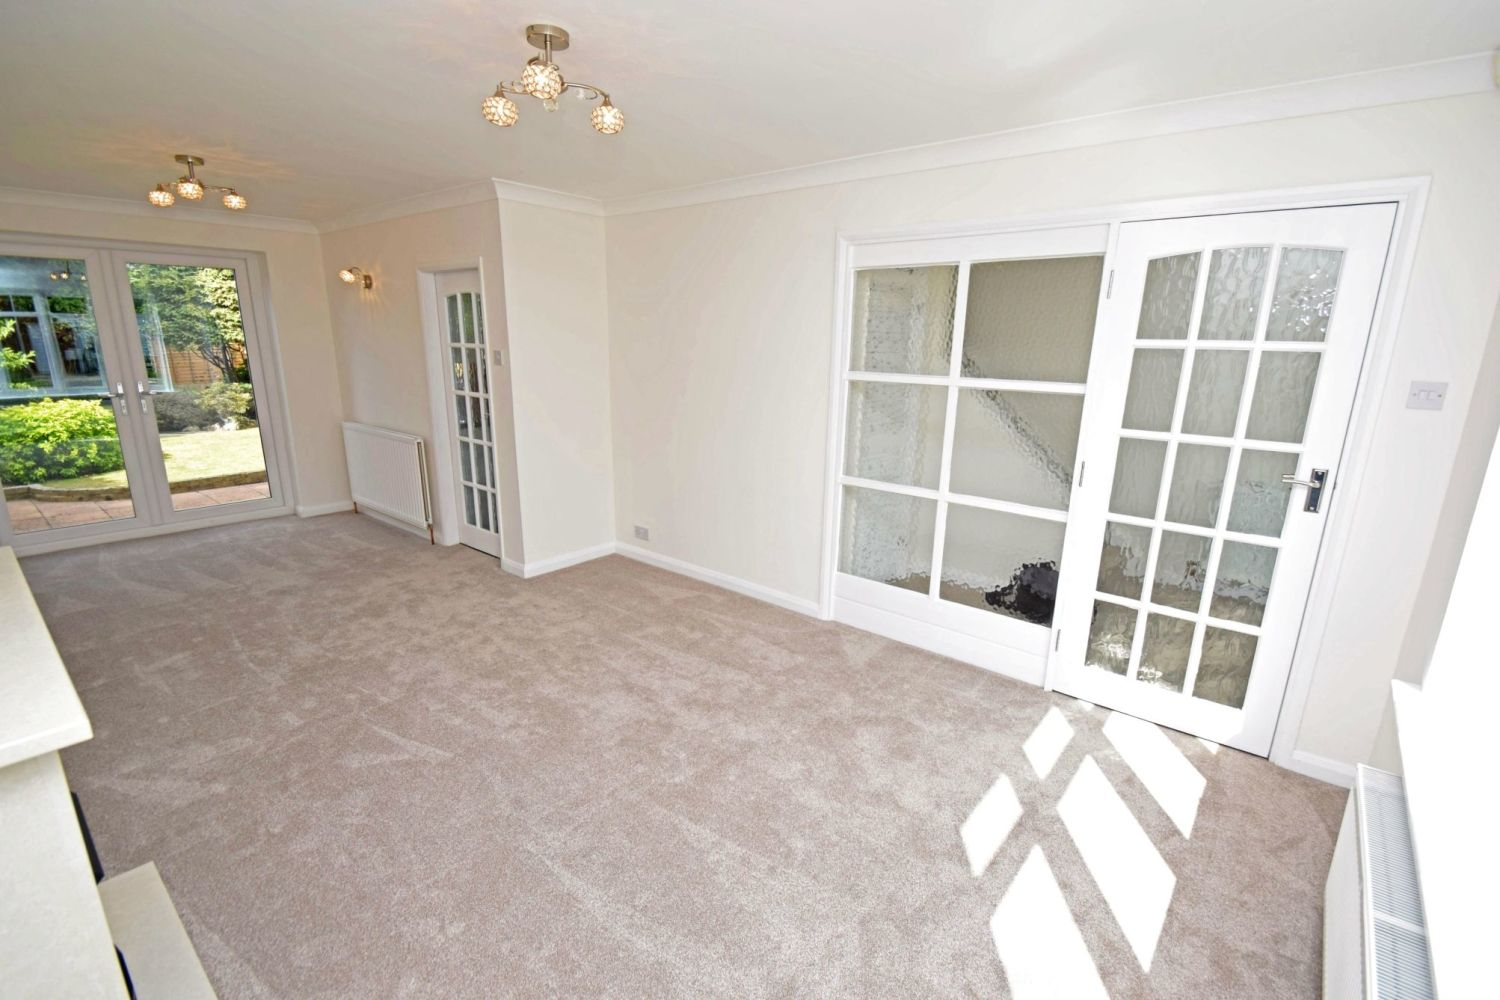 3 bed semi-detached for sale in Beachcroft Road, Wall Heath  - Property Image 4